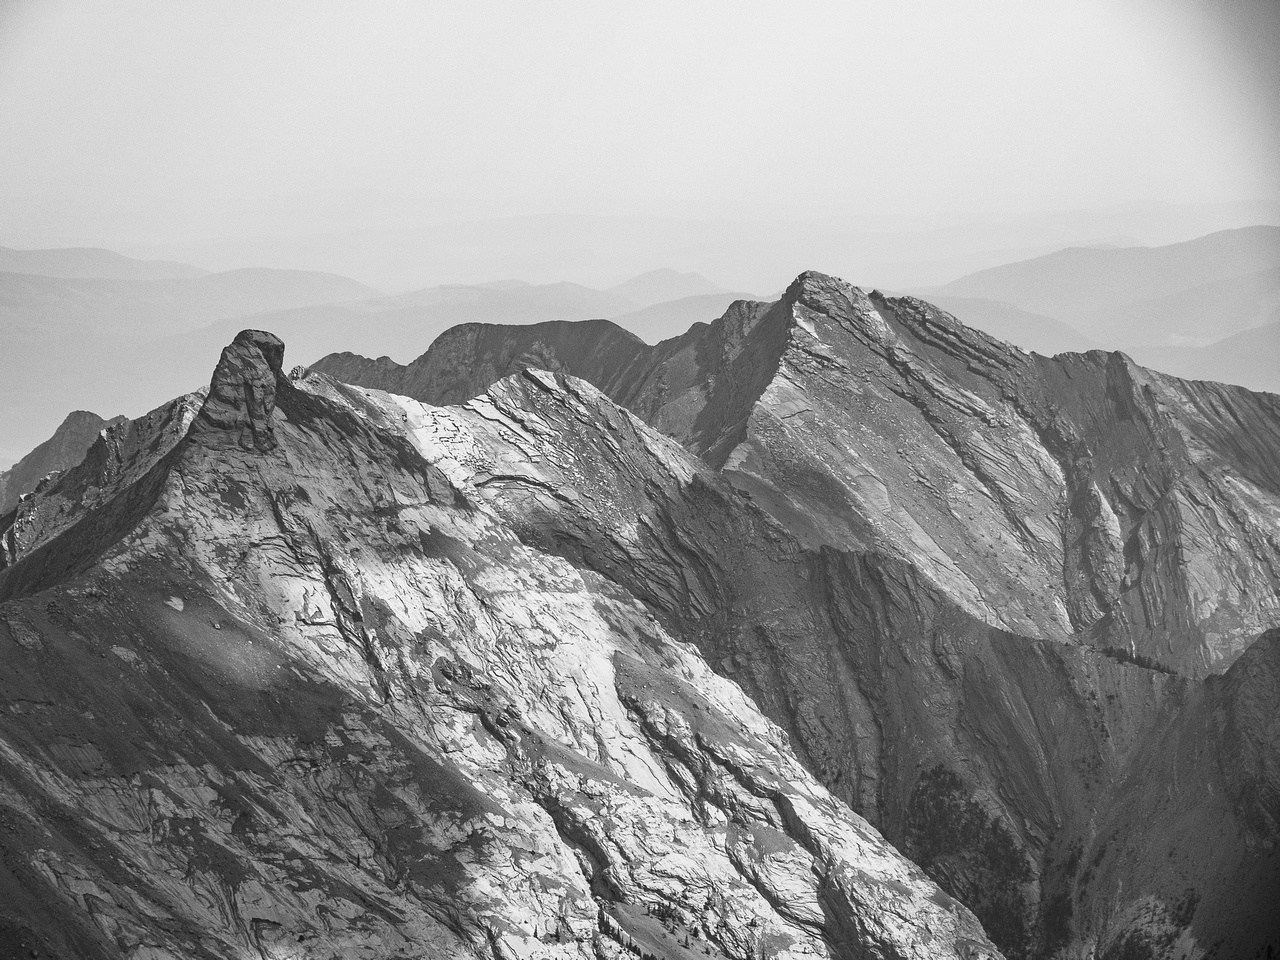 Old Fort Peak at left with Goat Mountain right of center.